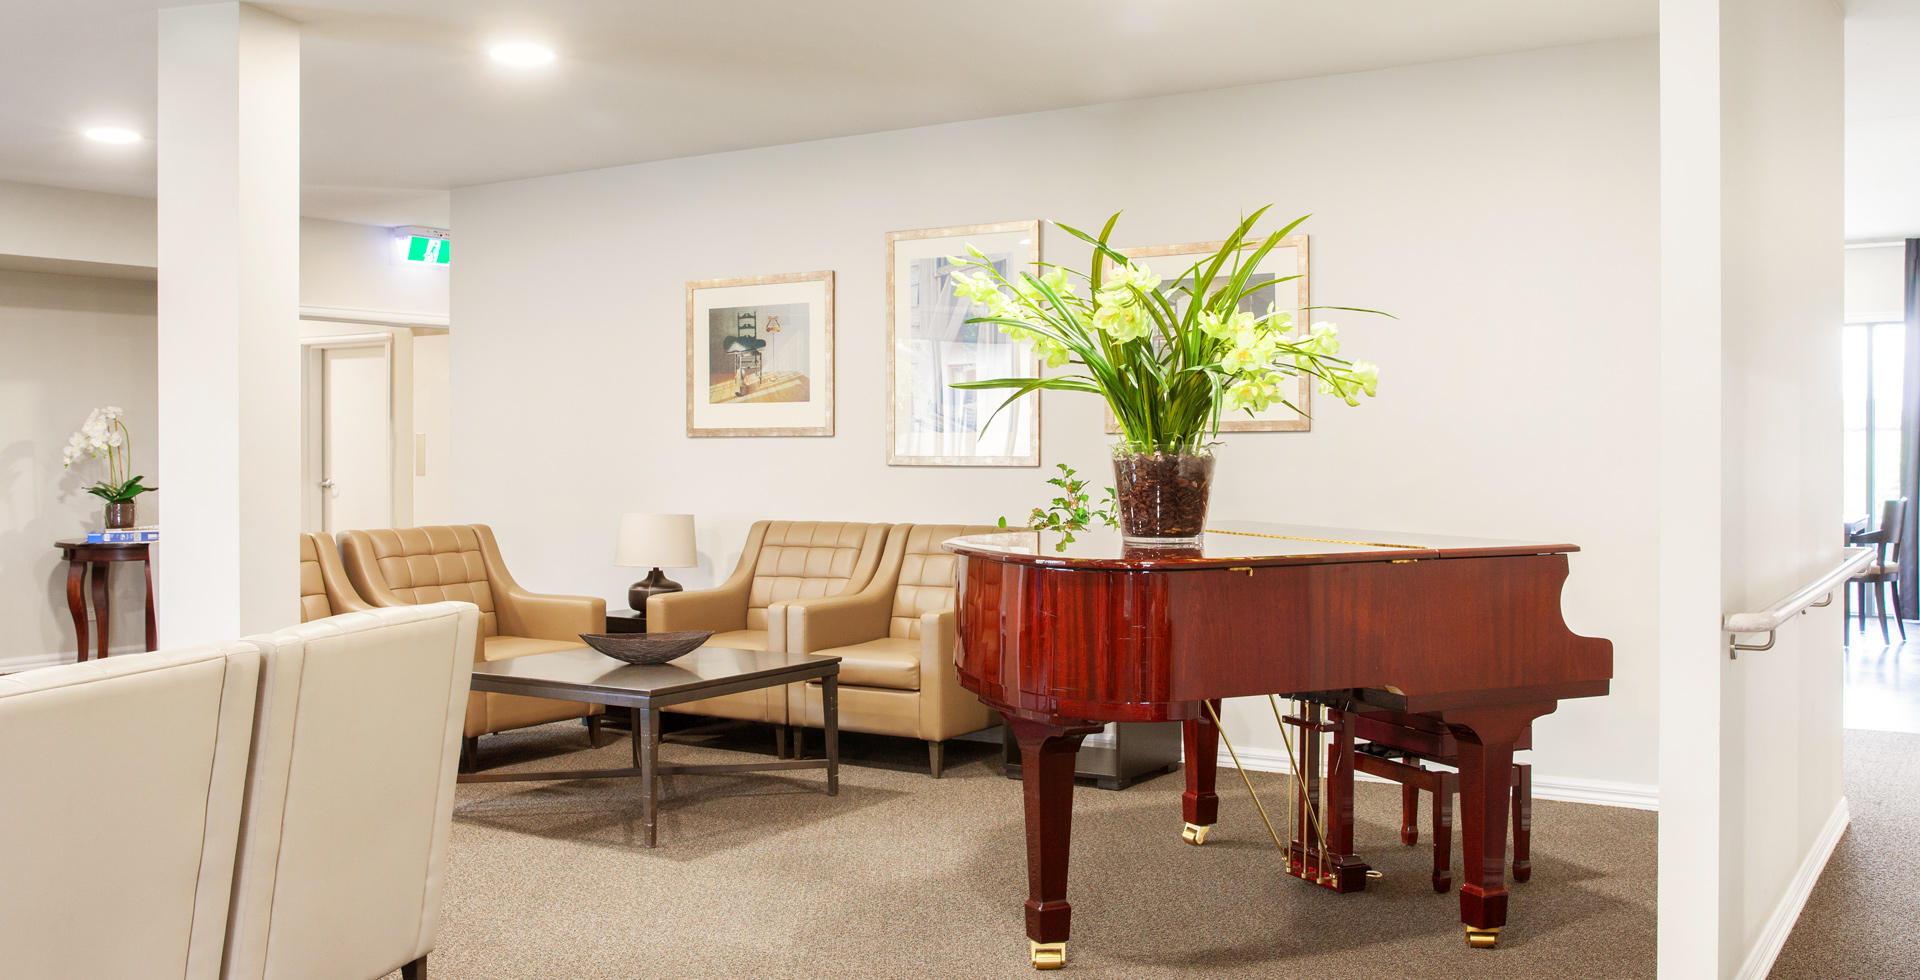 Arcare Civic Manor, Epping VIC 3076 - Arcare Epping